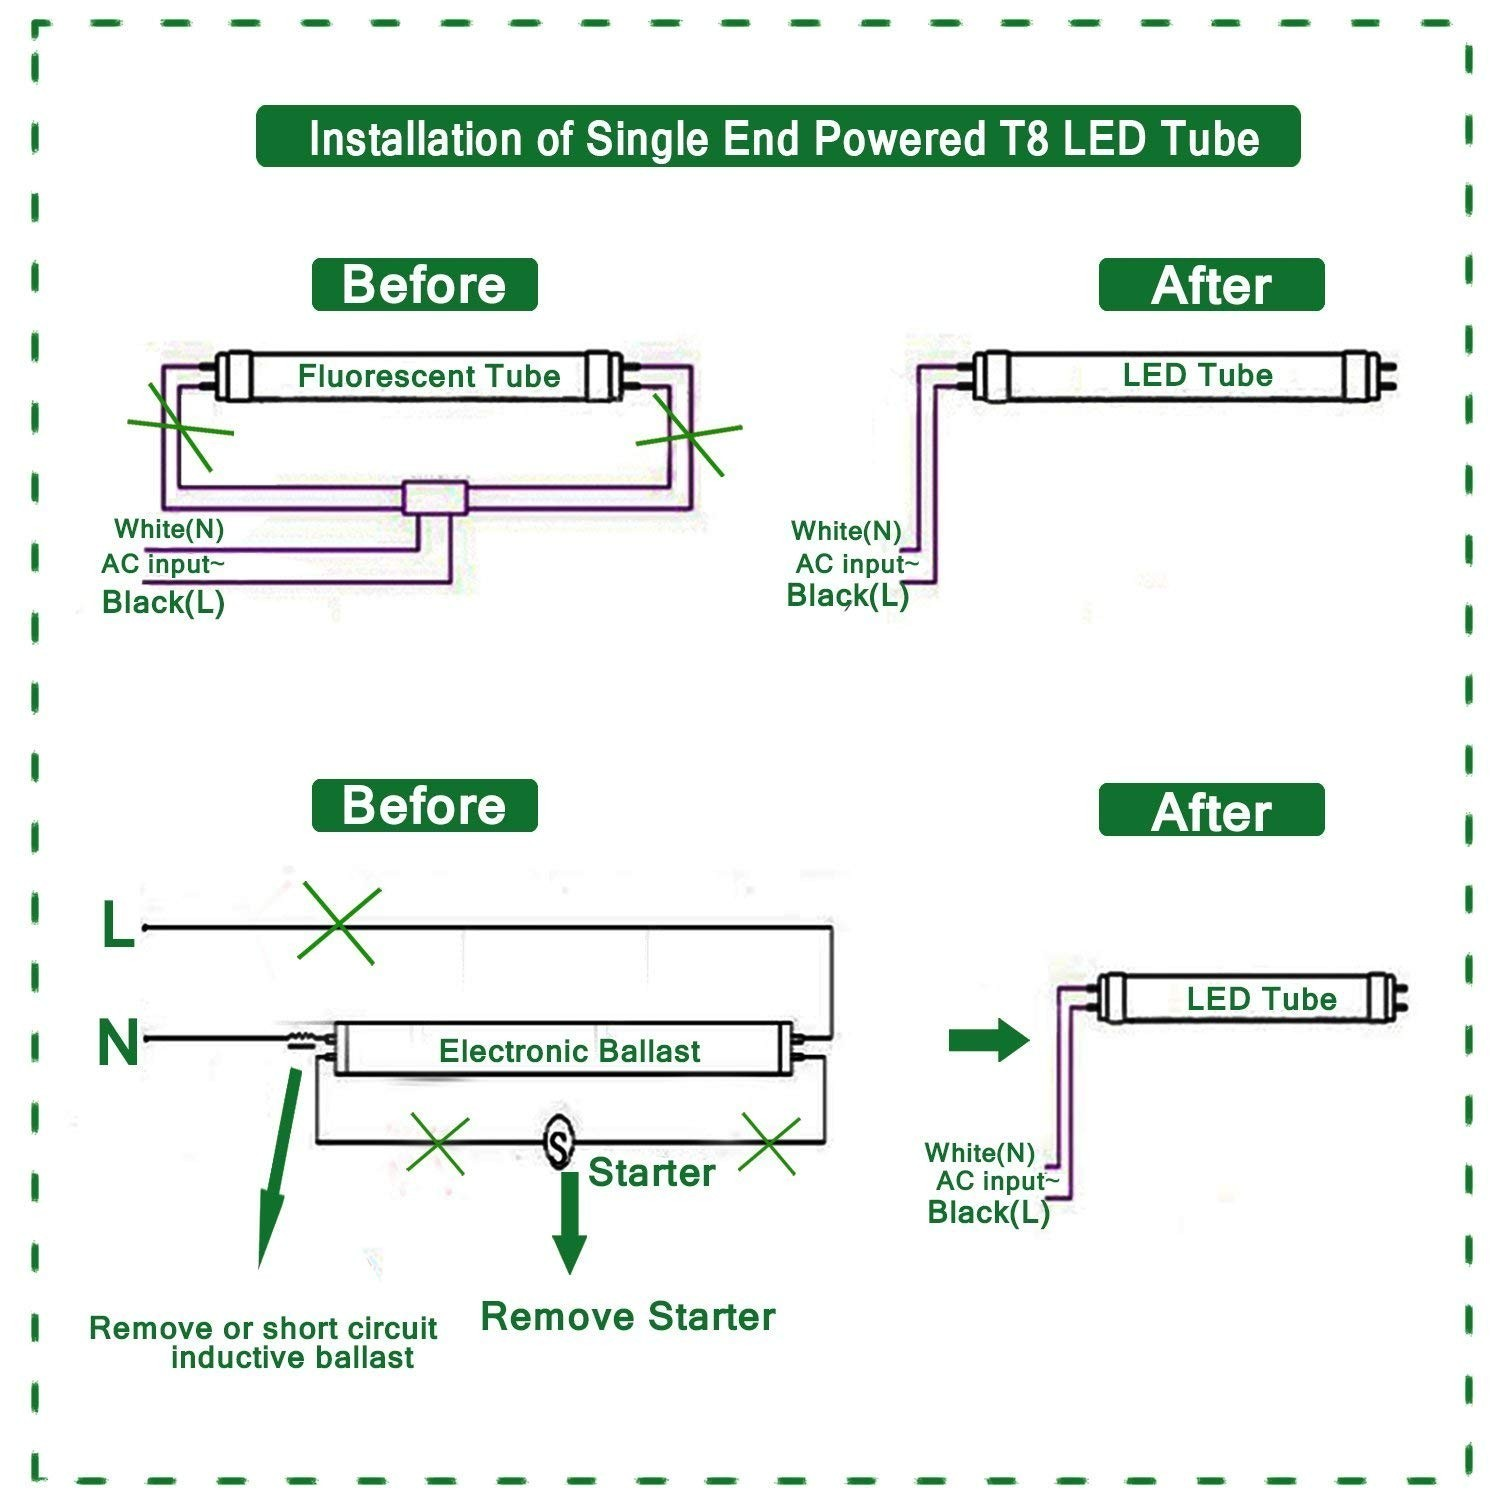 Wiring Diagram for Led Tubes Refrence Wiring Diagram Led Tube Philips Refrence T8 Led Tube Wiring